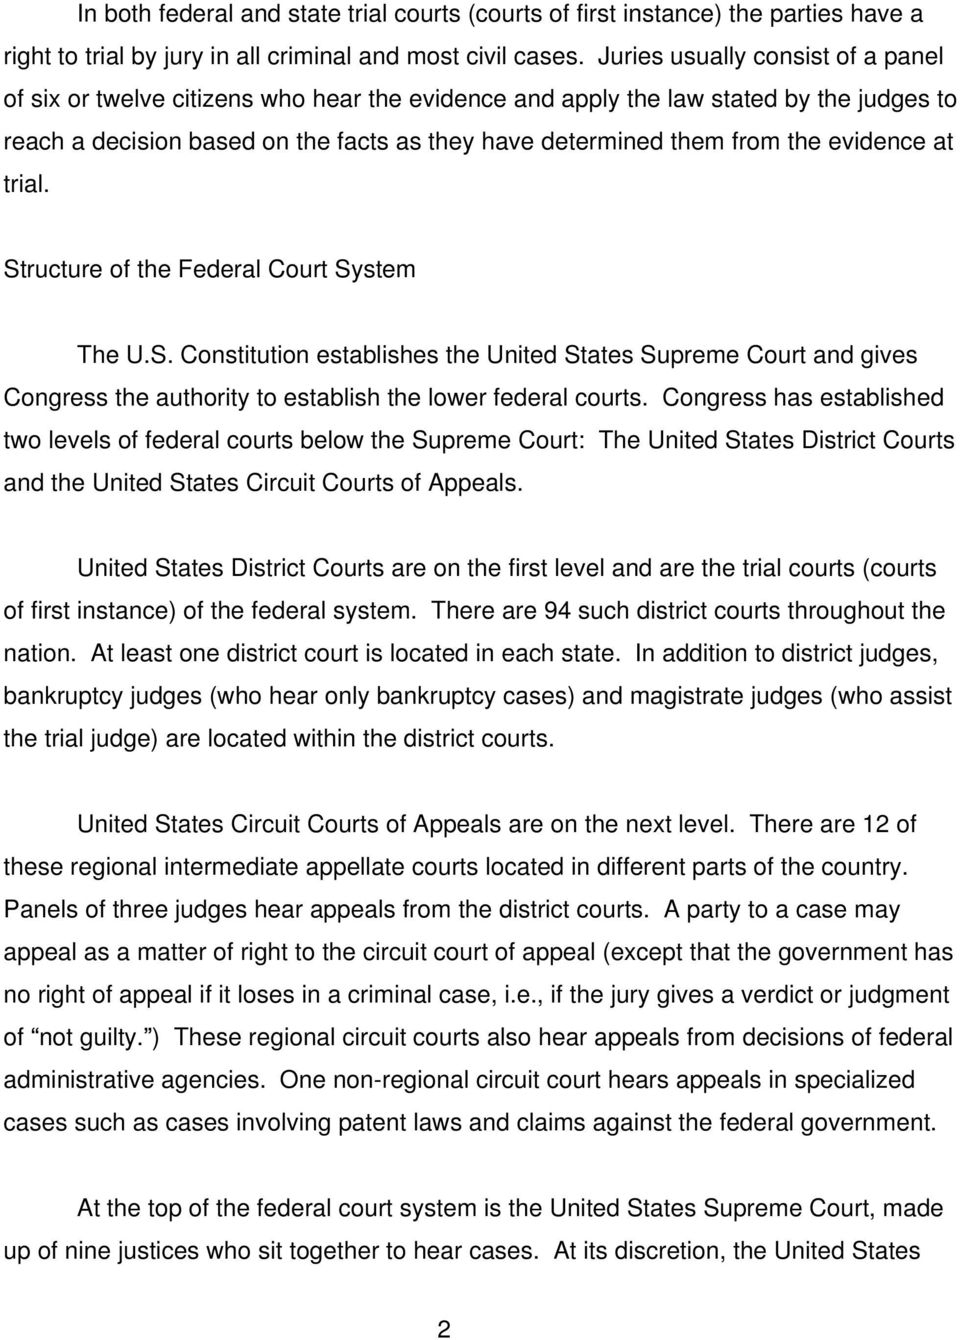 evidence at trial. Structure of the Federal Court System The U.S. Constitution establishes the United States Supreme Court and gives Congress the authority to establish the lower federal courts.